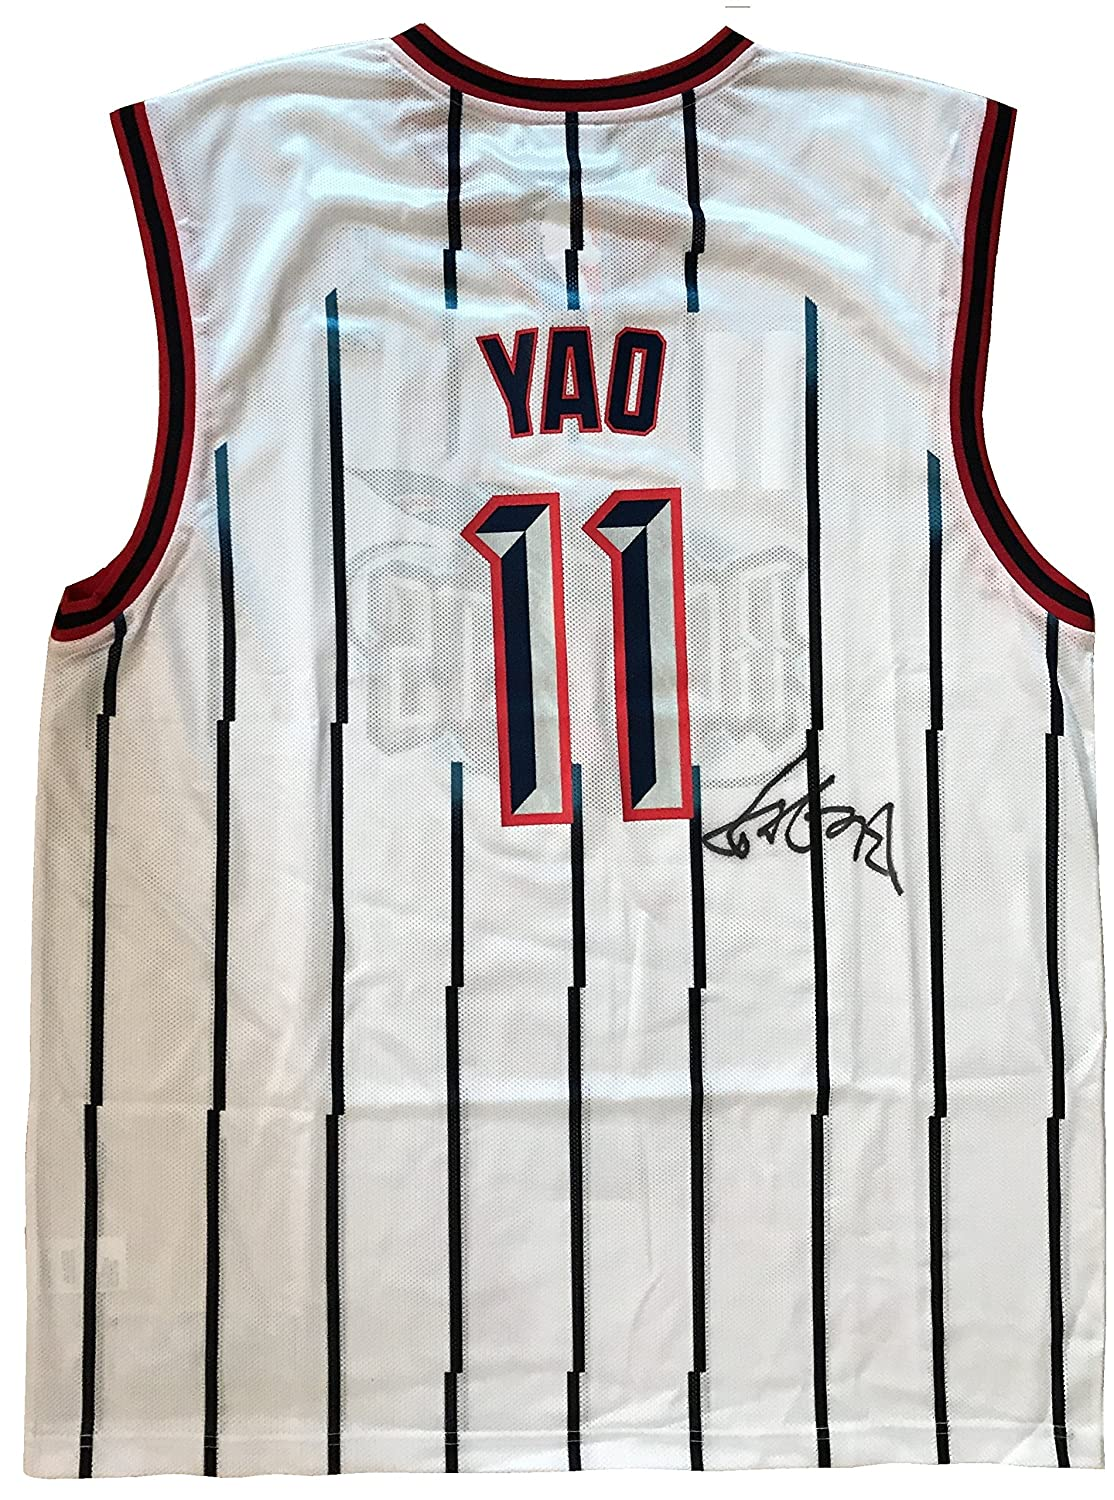 ... Yao Ming AutographedSigned Replica Reebok NBA Houston Rockets Rookie  Jersey at Amazons Sports Collectibles Store Steve Francis 3 ... 00731f45a